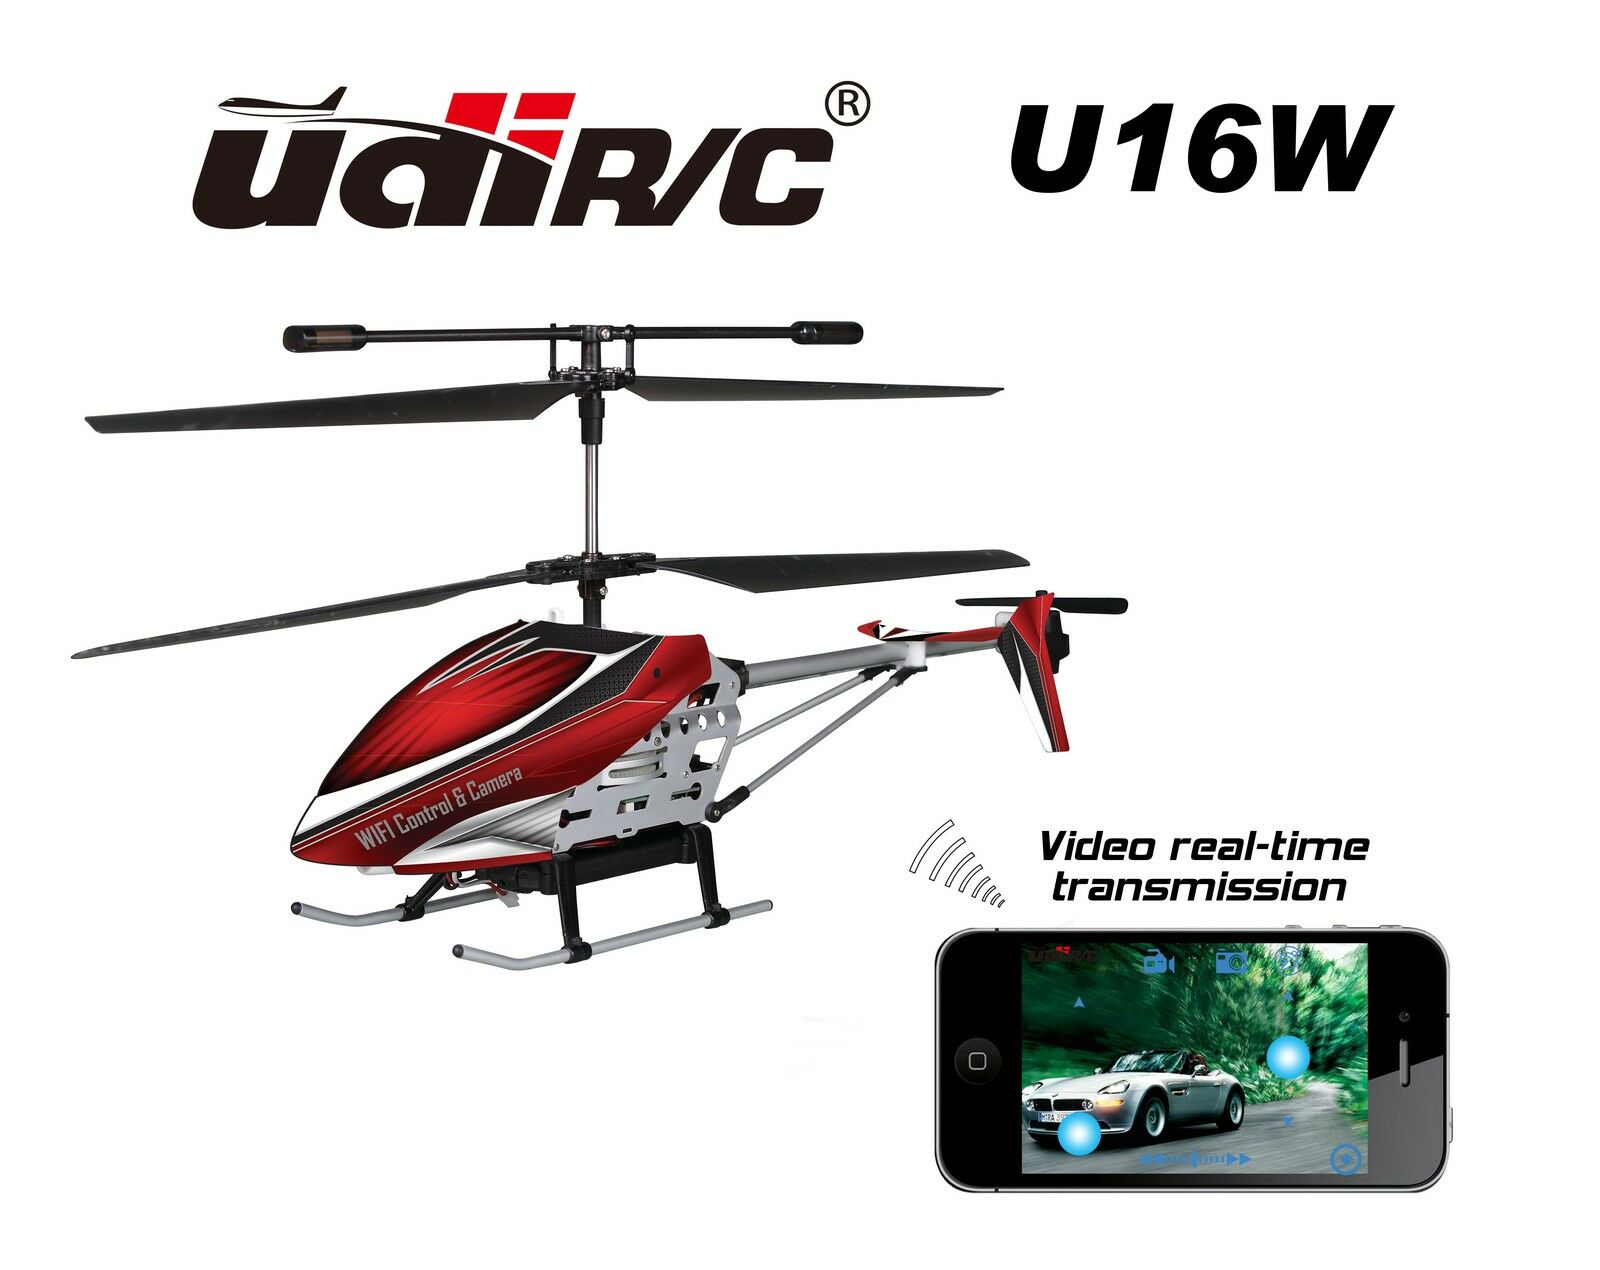 UDI/RC u16w Elicottero Coassiale Wifi Iphone Ipad controllato Elicottero